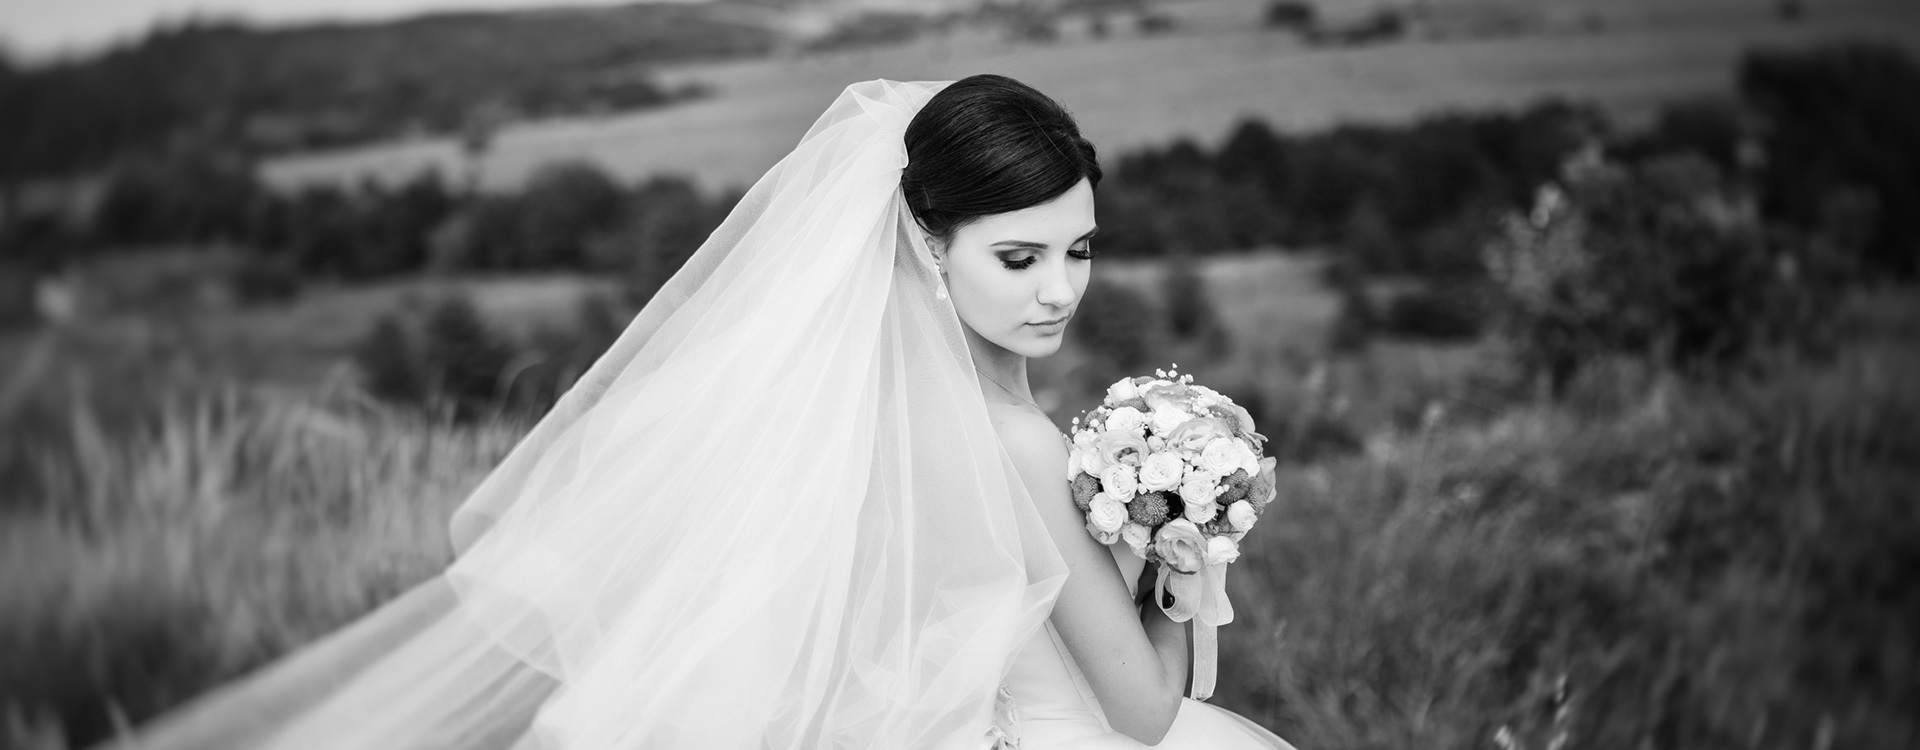 Wedding Dresses Berkshire, Designer Wedding Dress Outlet, Wedding Dresses Bucks